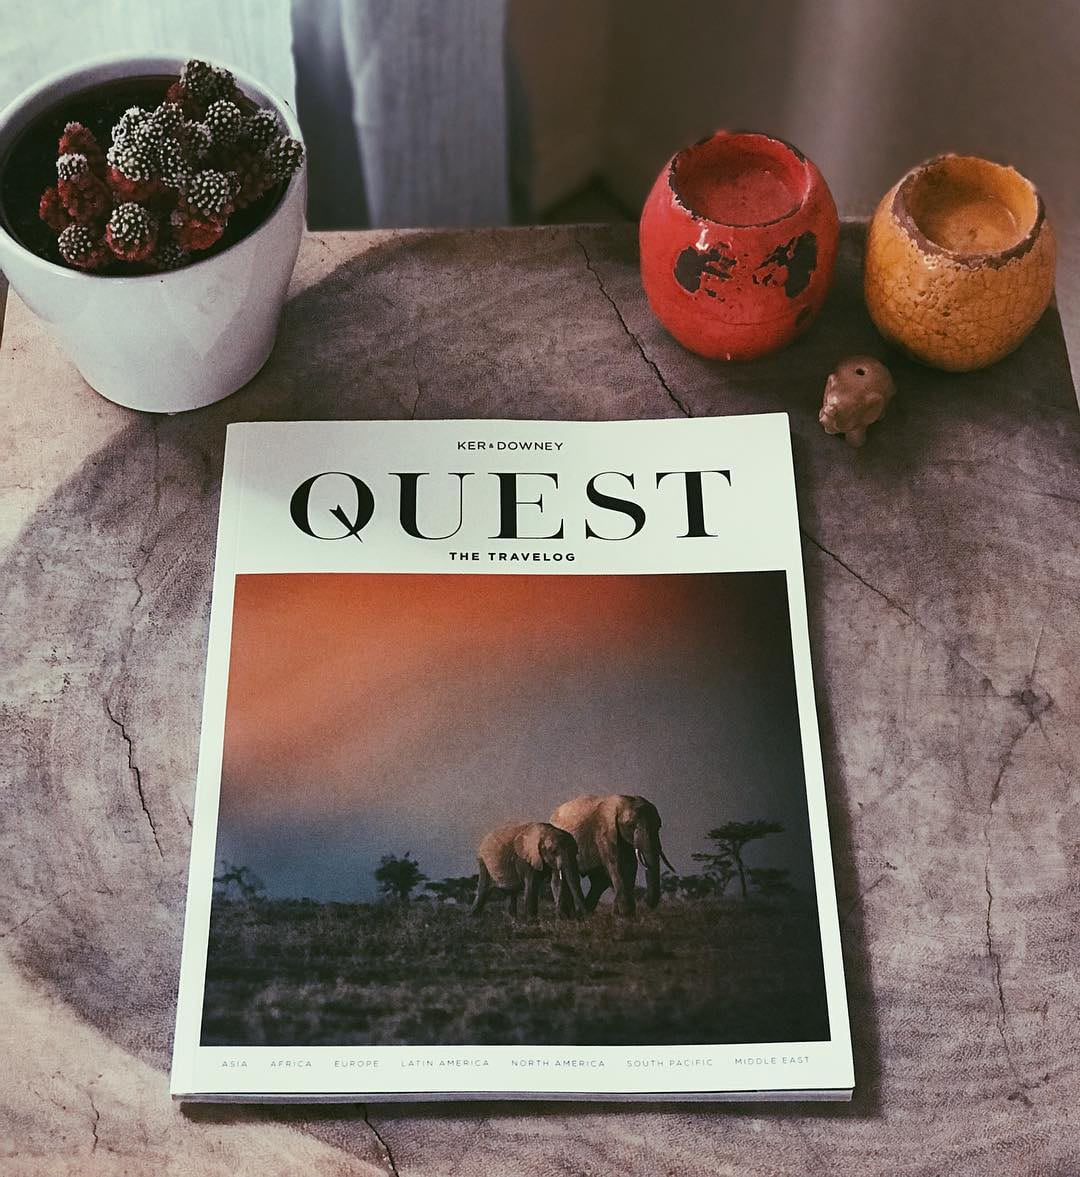 QUEST Travelog on a table